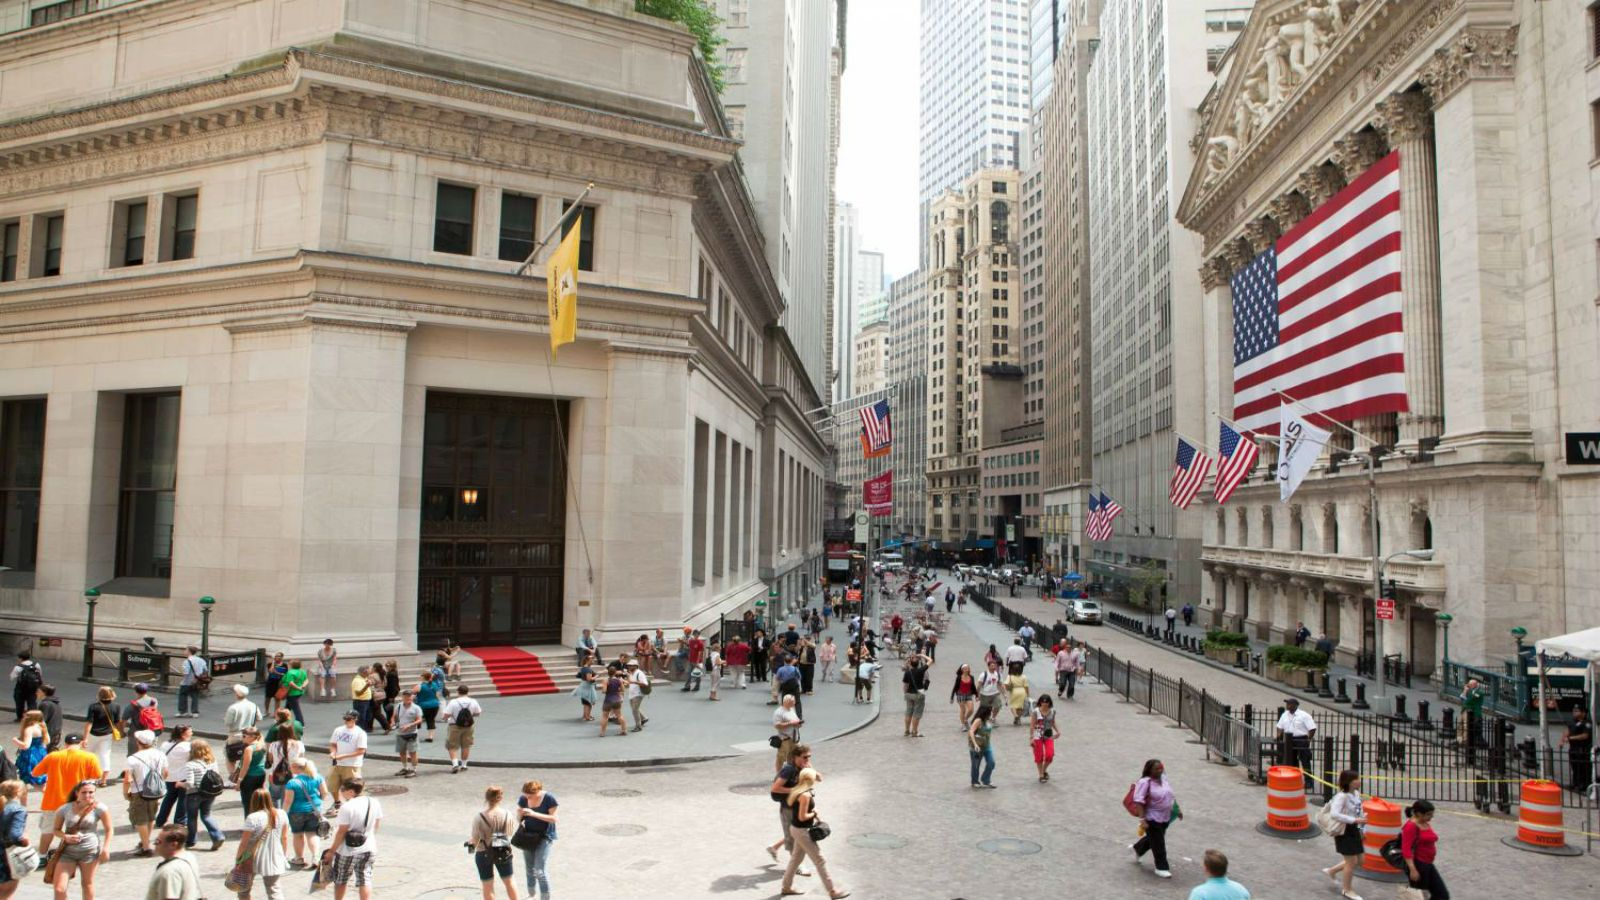 Things to do in NYC - Wall Street